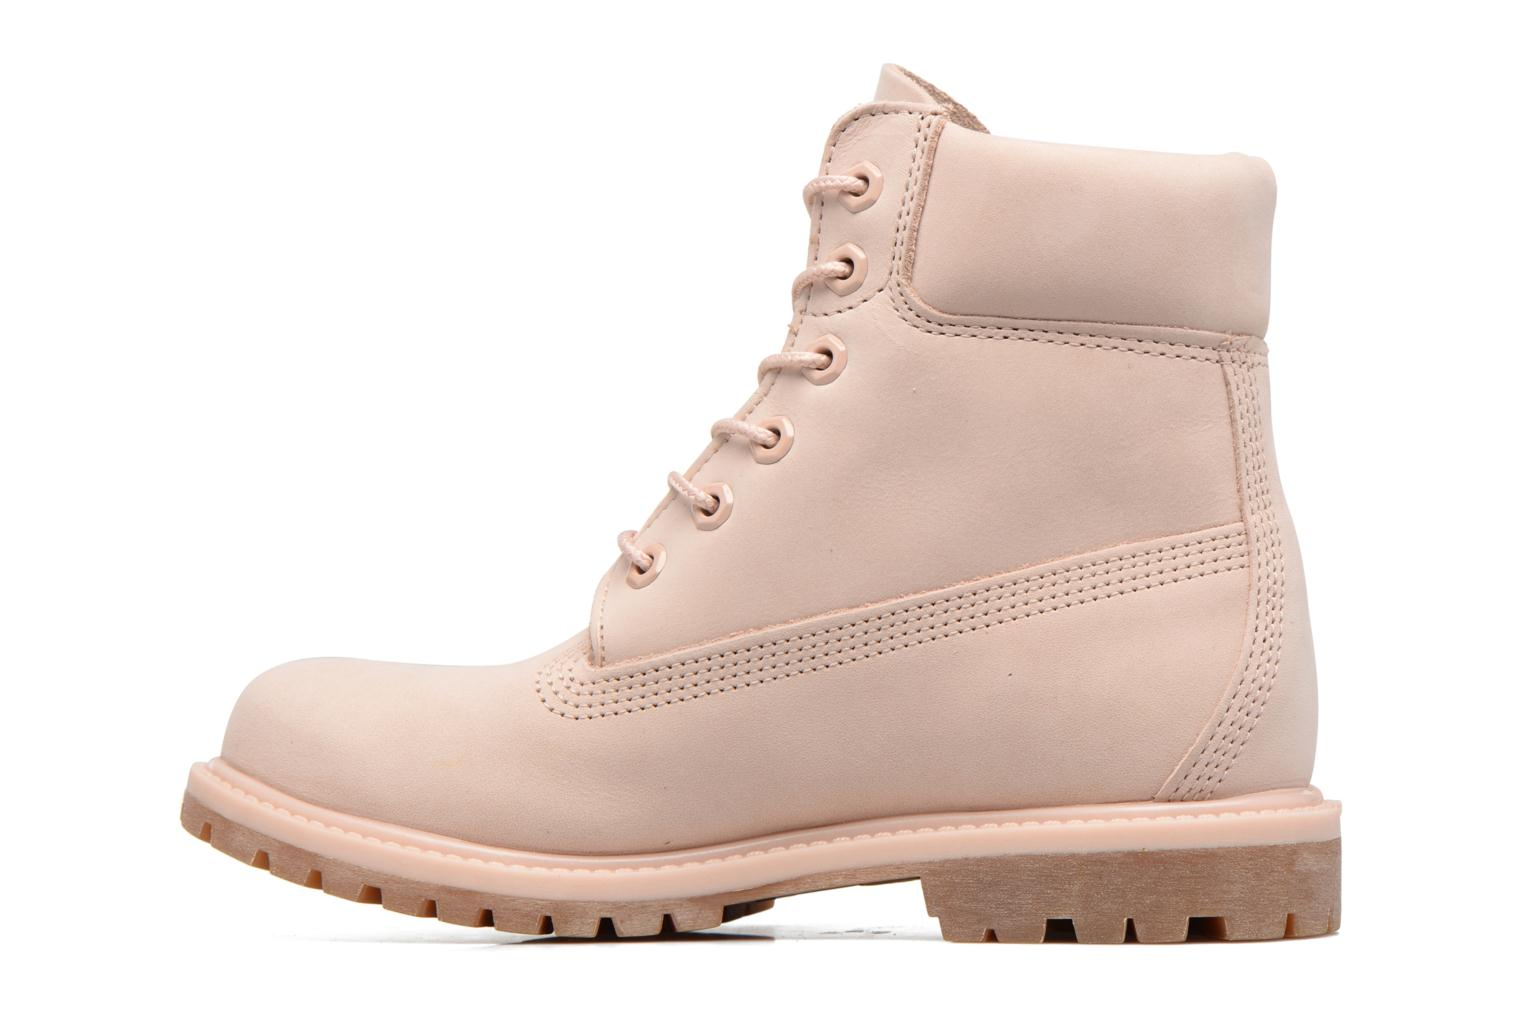 6in Premium Boot - W Cameo Rose Waterbuck Monochromatic